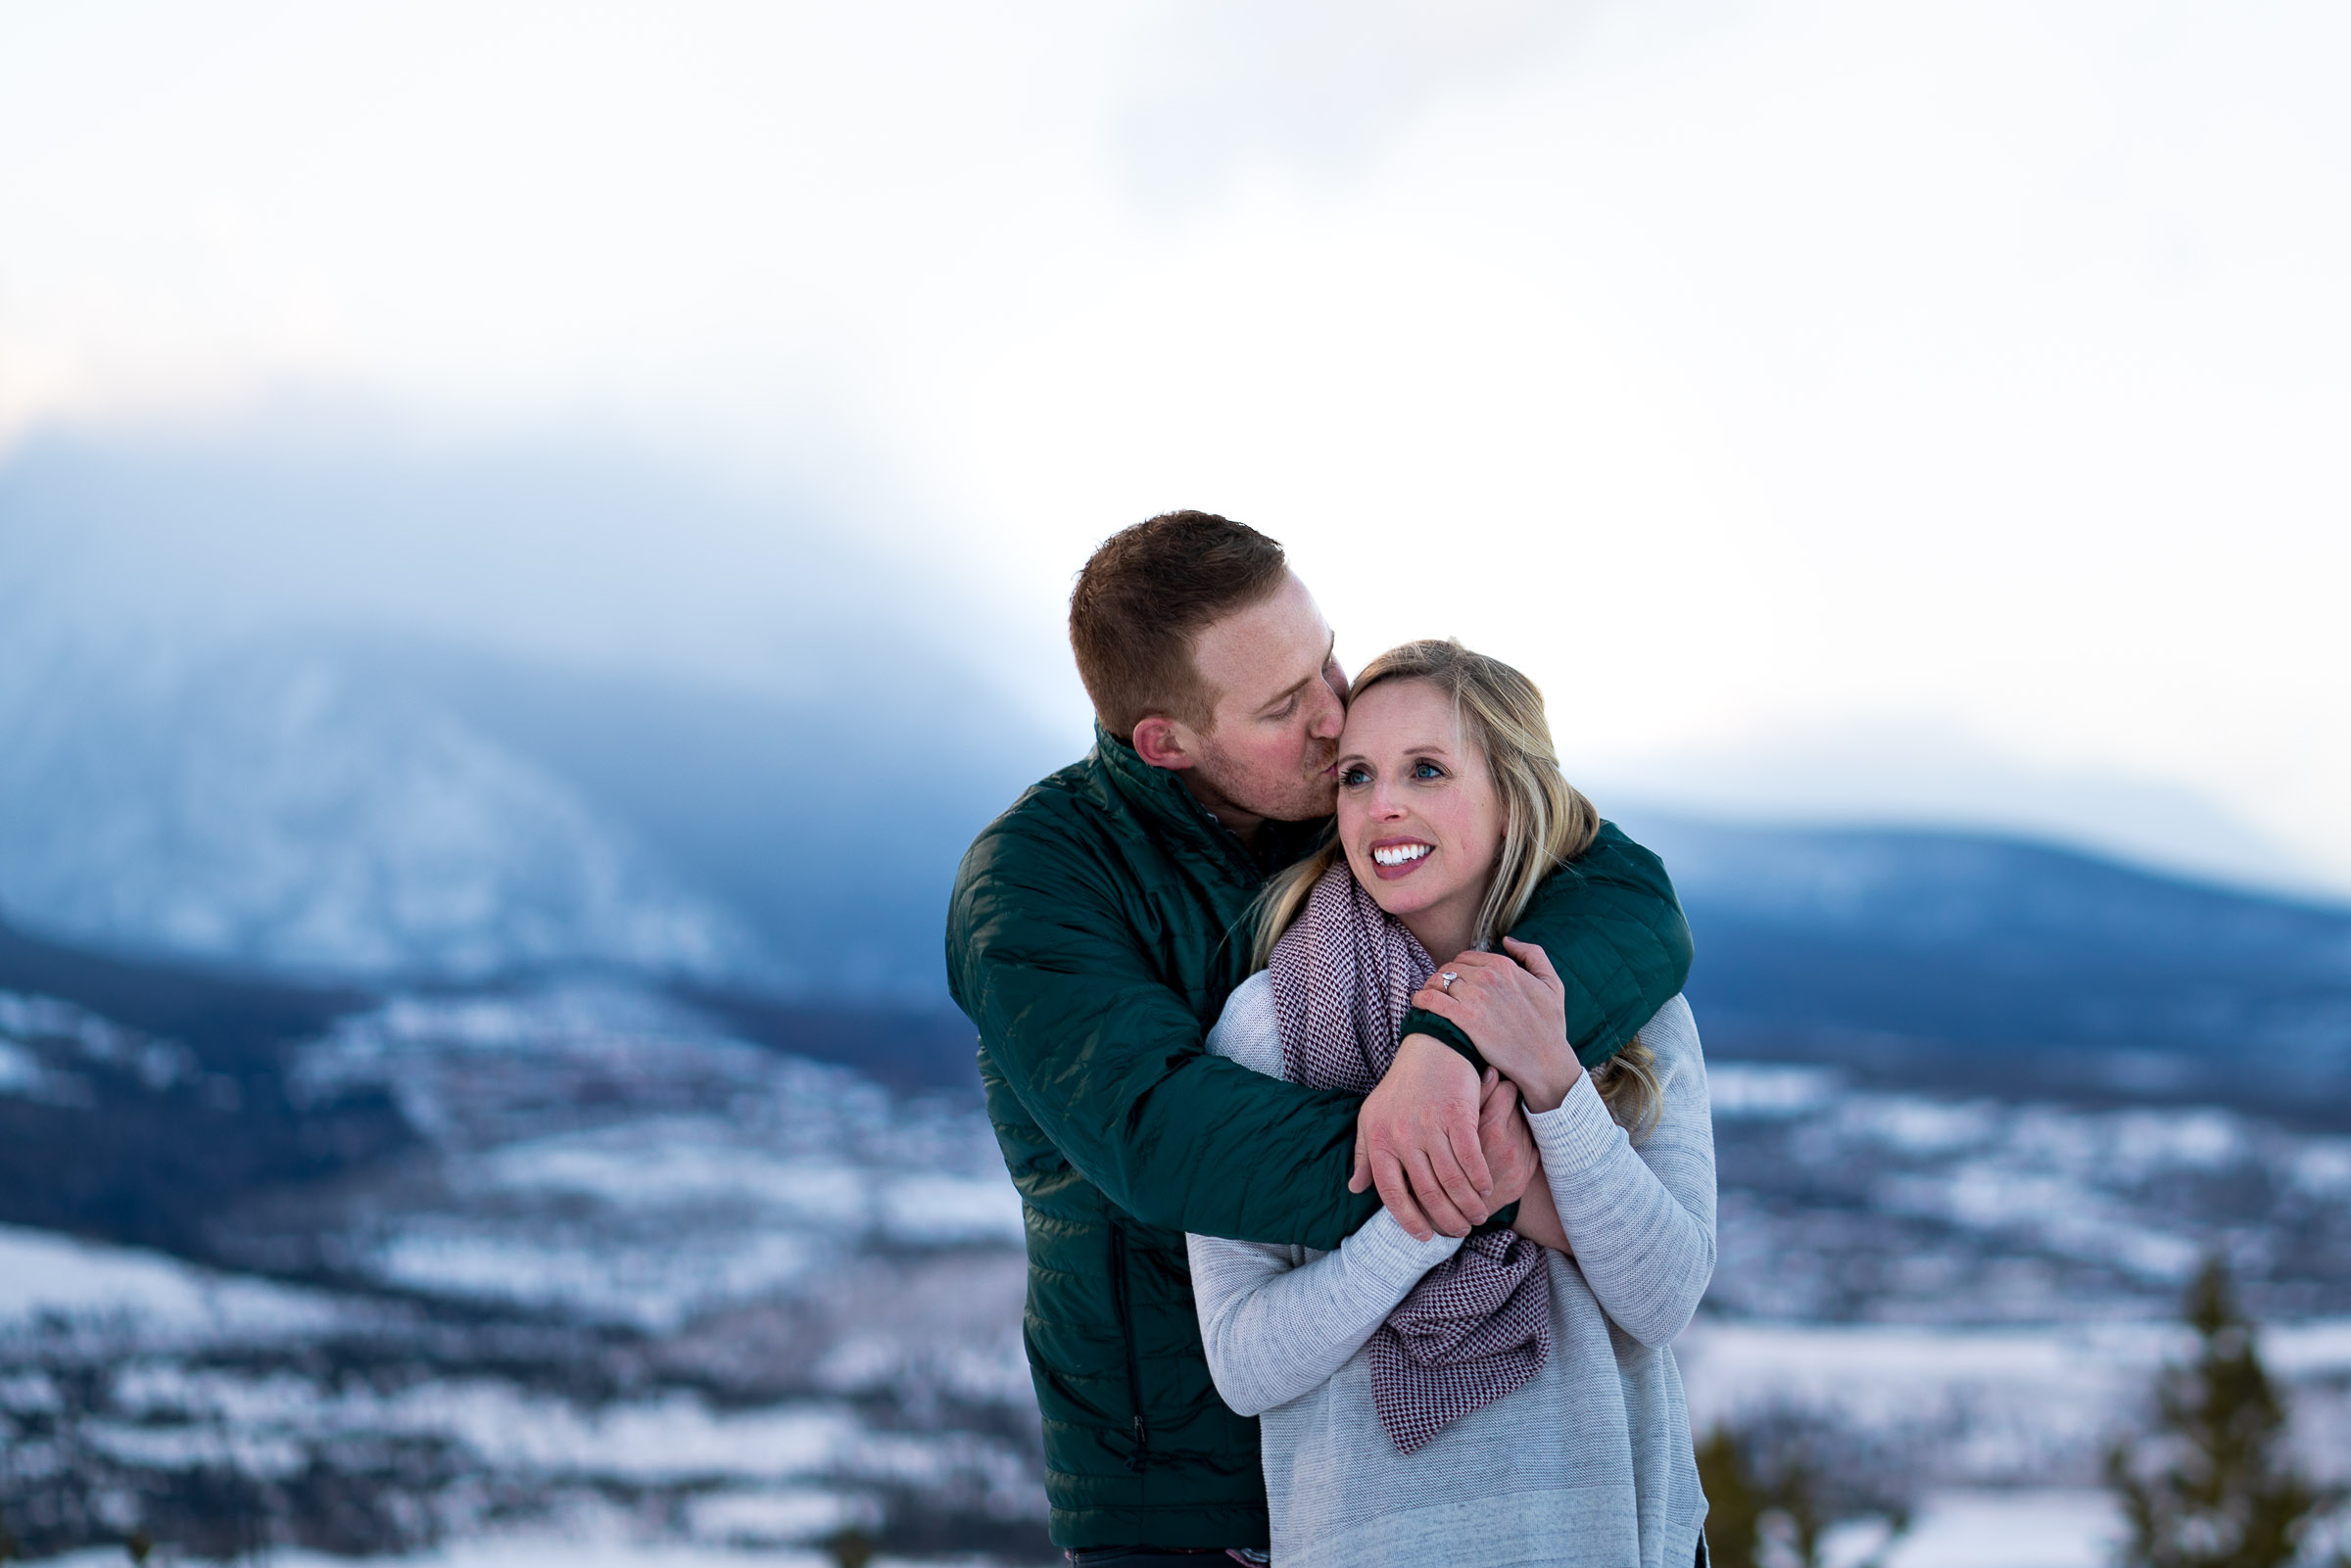 Melissa_Bubba_Engagement_Session_Sapphire_Point_002.JPG